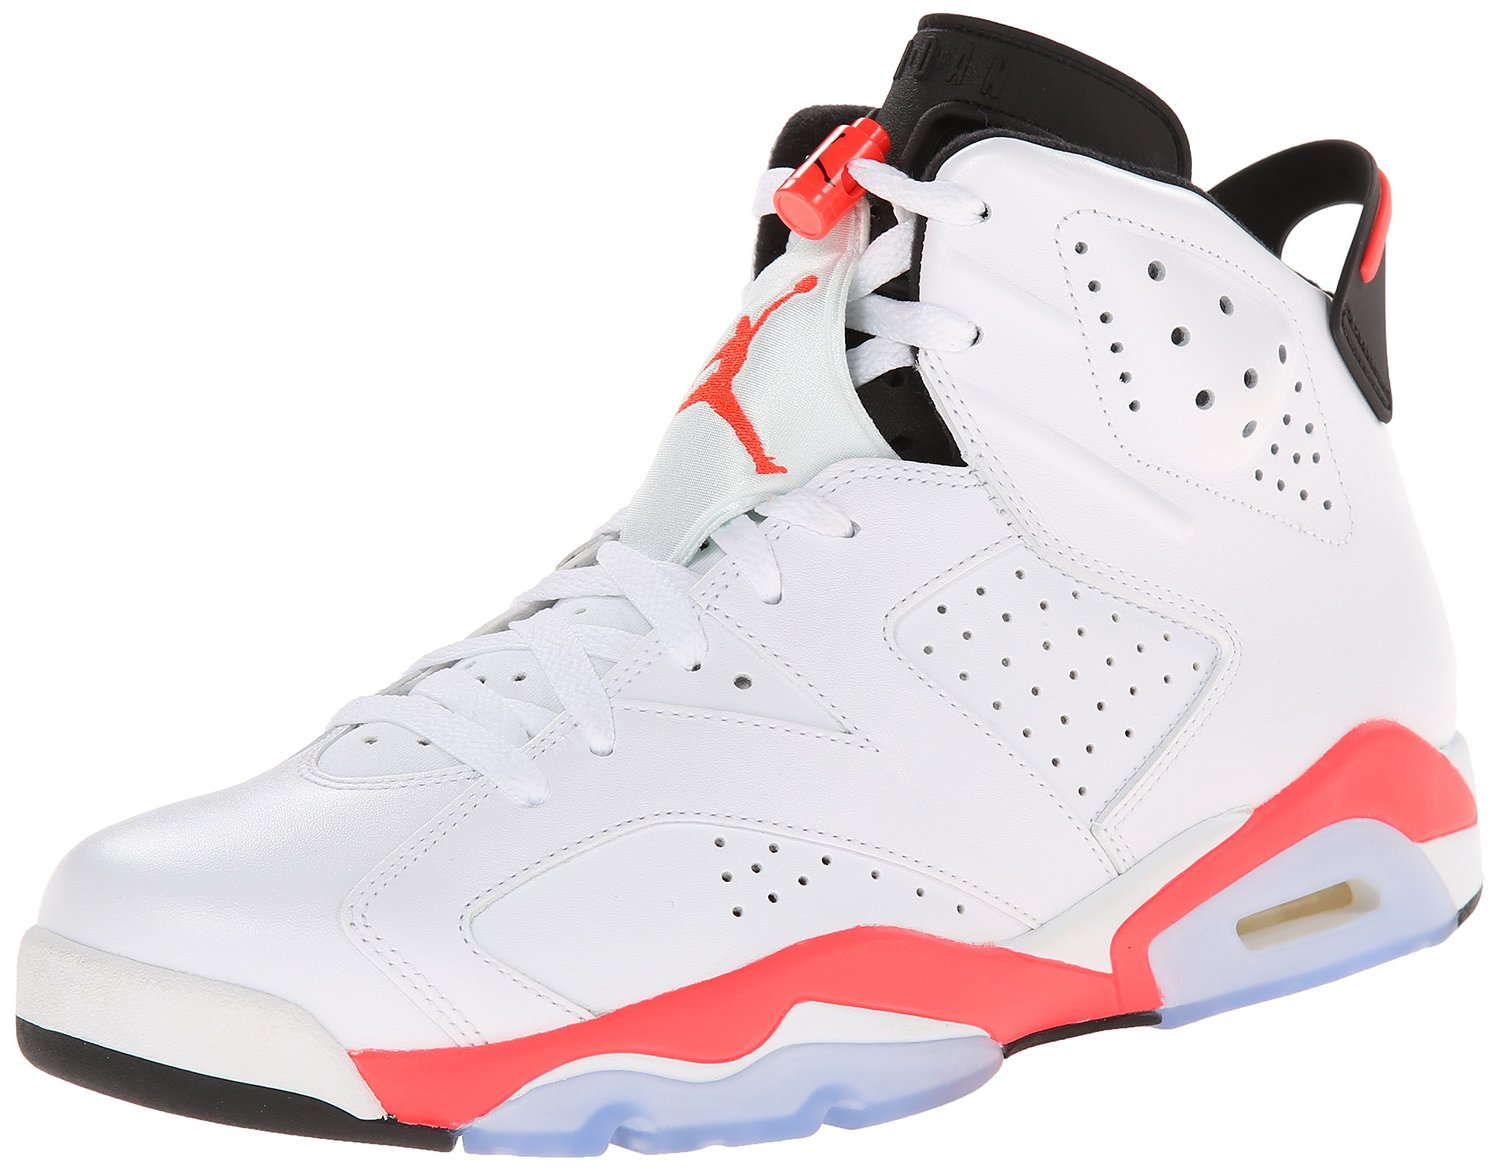 Nike Mens Air Jordan 6 Retro White/Infrared-Black Leather Basketball Shoes Size 13